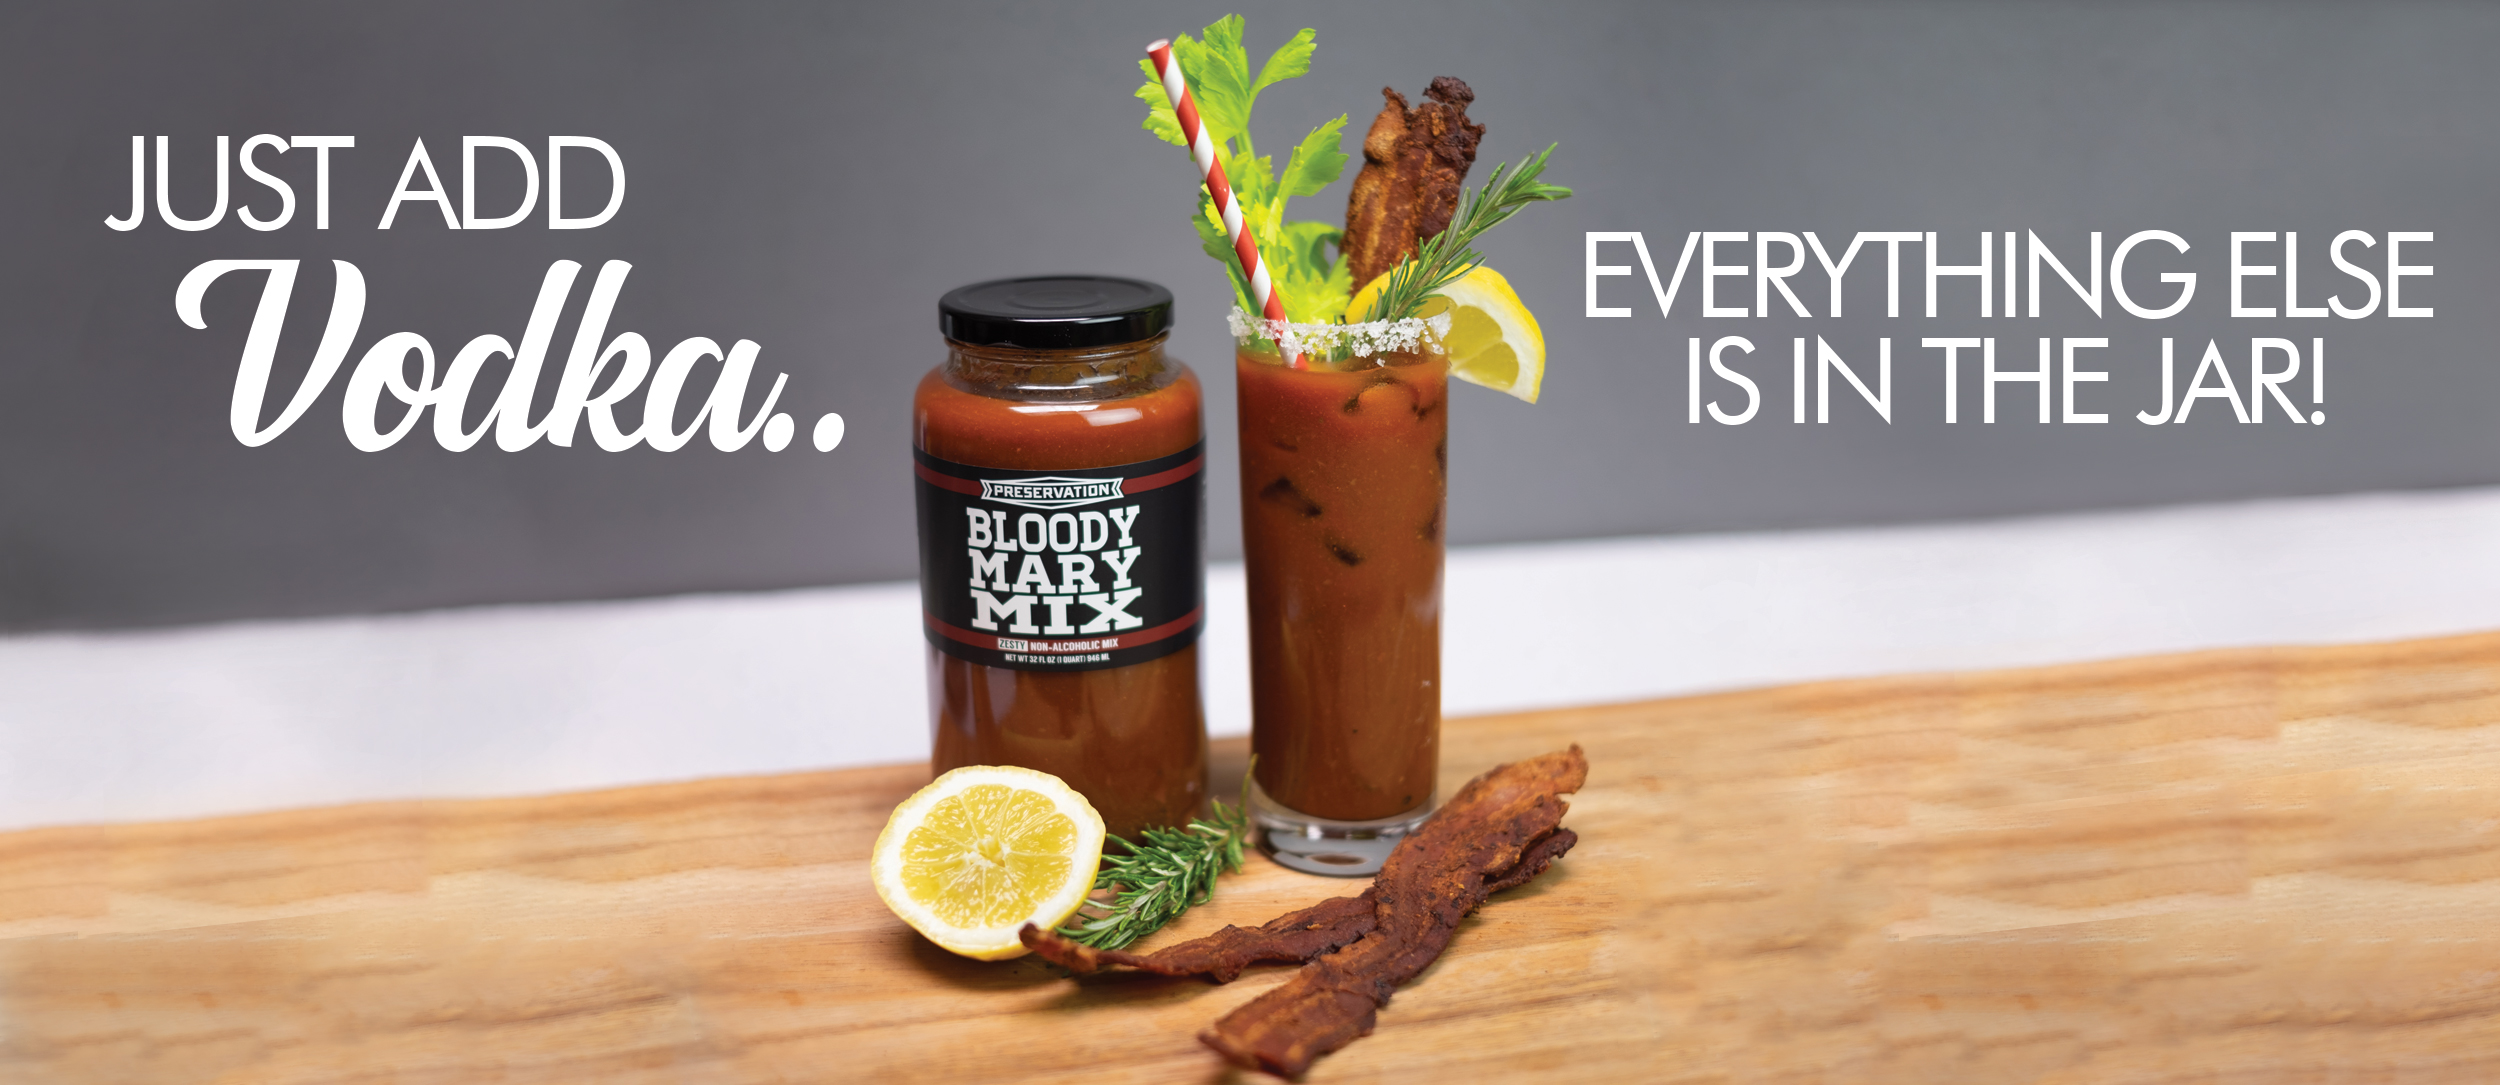 Bacon-Bloody-Mary-Banner.jpg